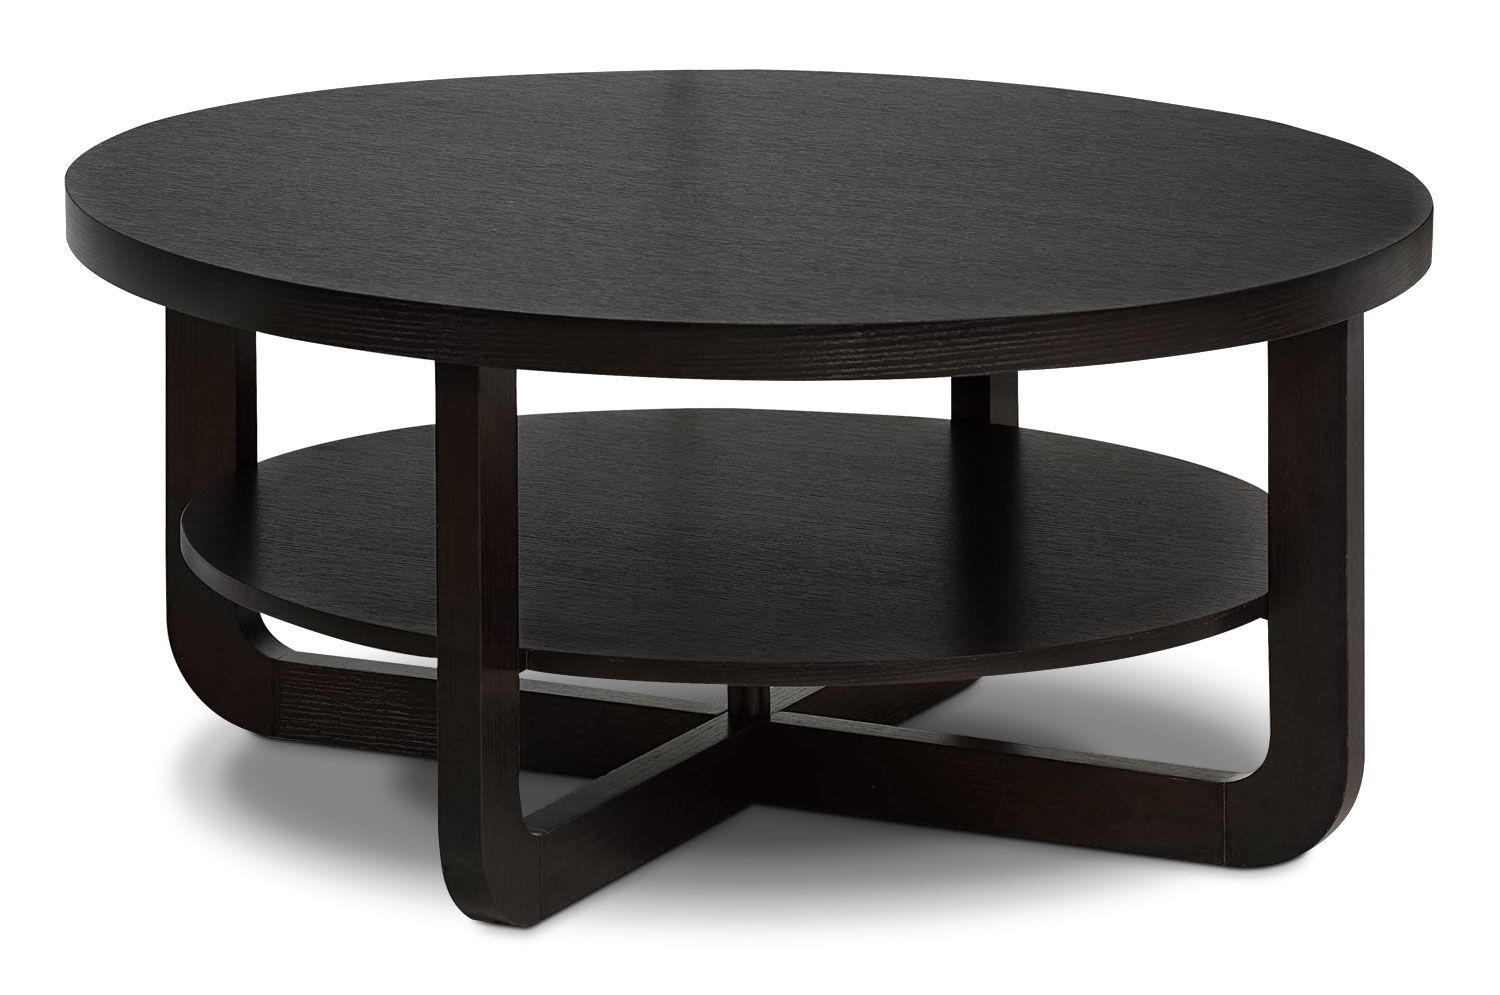 Round Coffee Table IKEA Coffee Tables Pinterest Round coffee